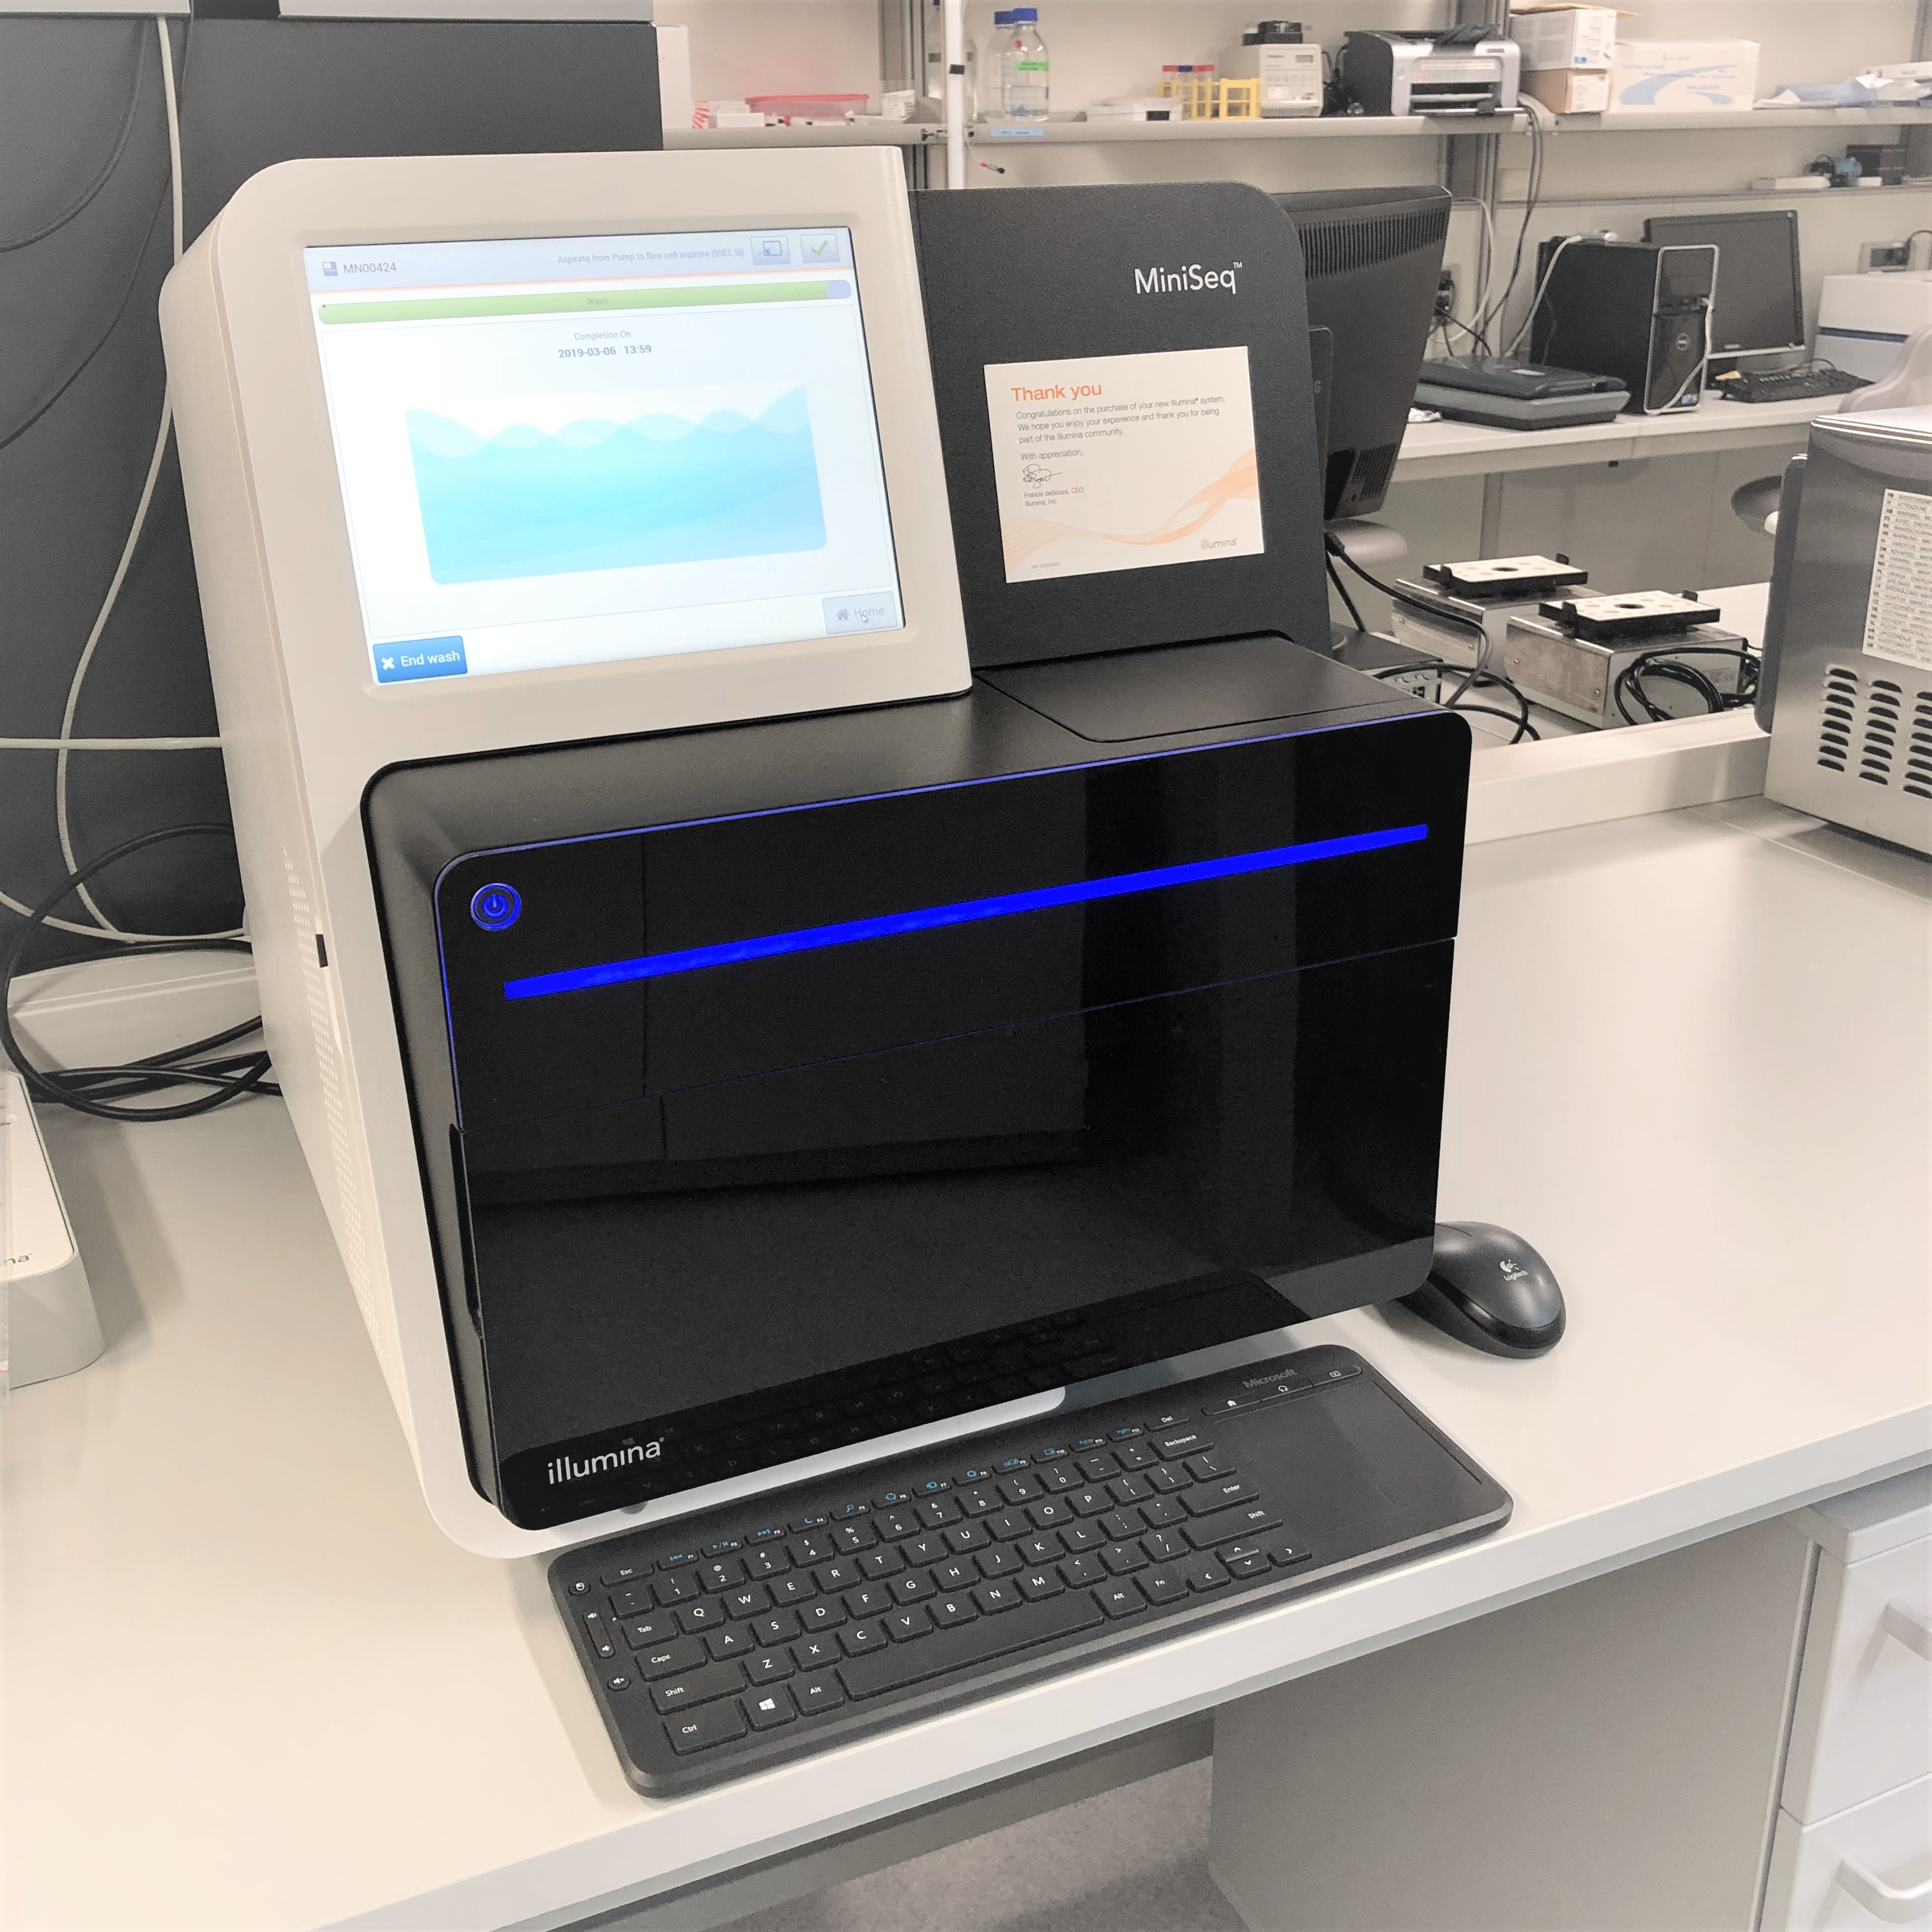 Illumina MiniSeq Sequencing System